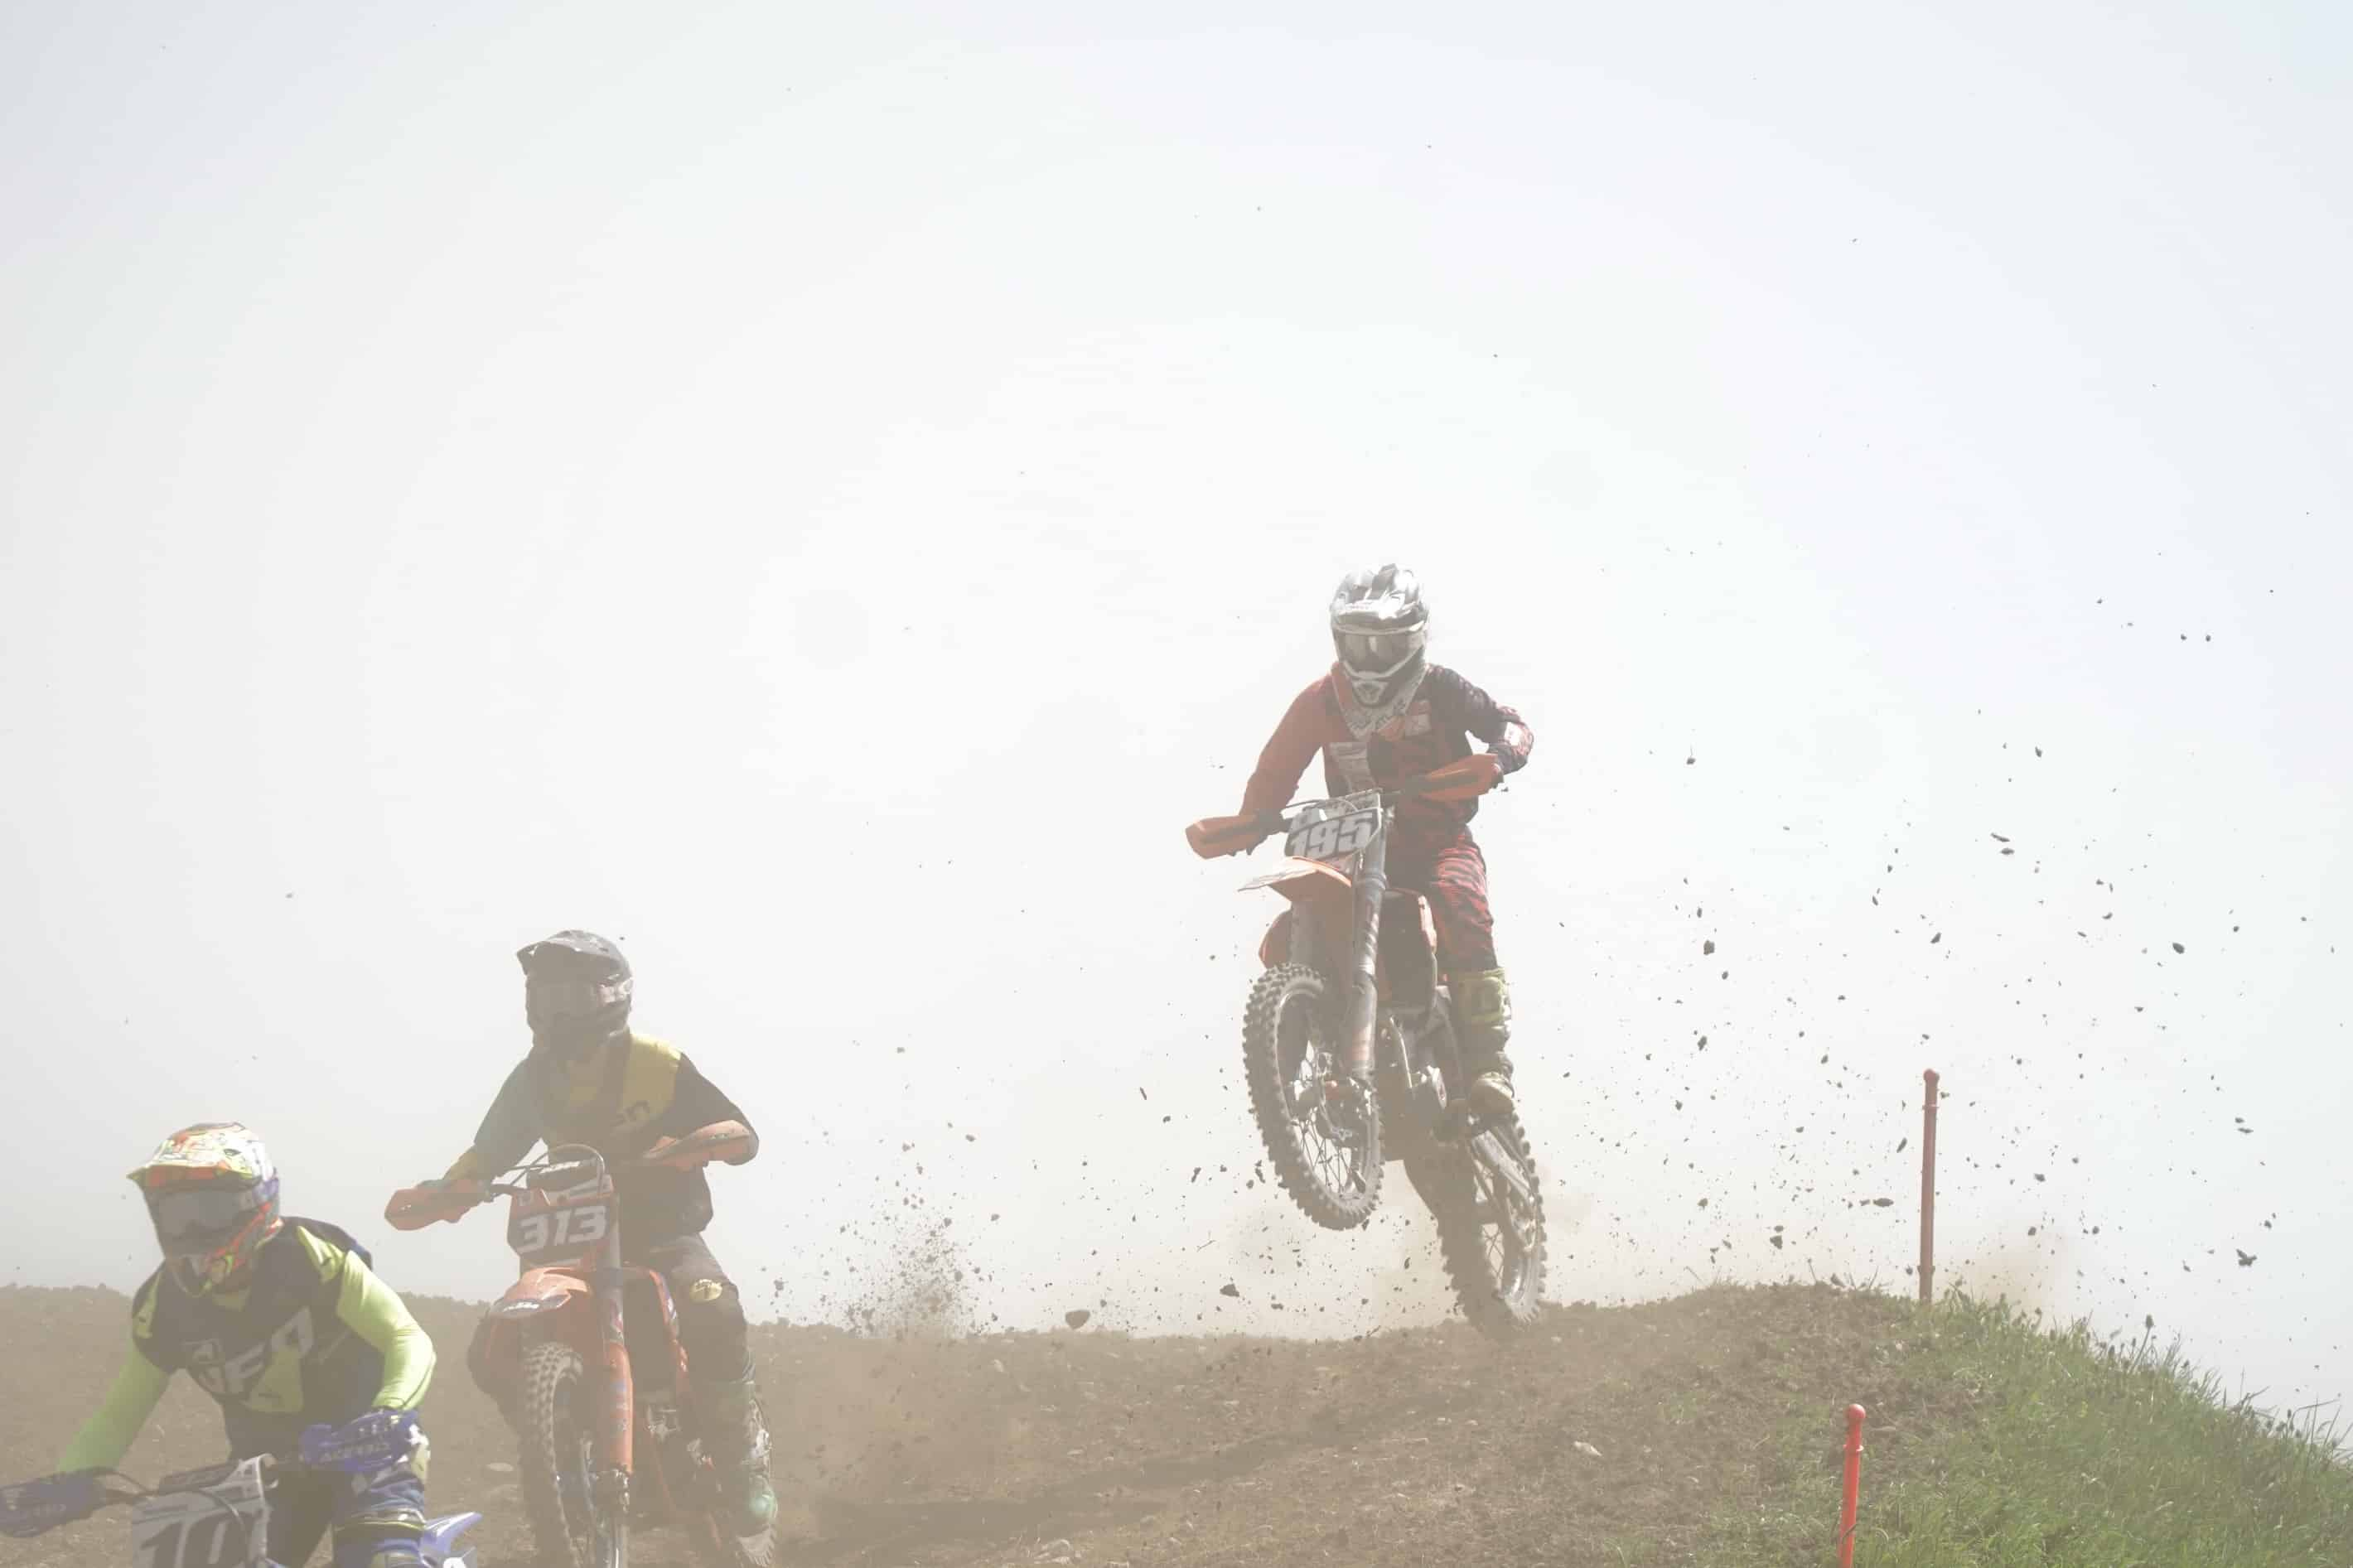 DSC 551_Moto Cross Sittendorf Teil1 am 29.04.2018